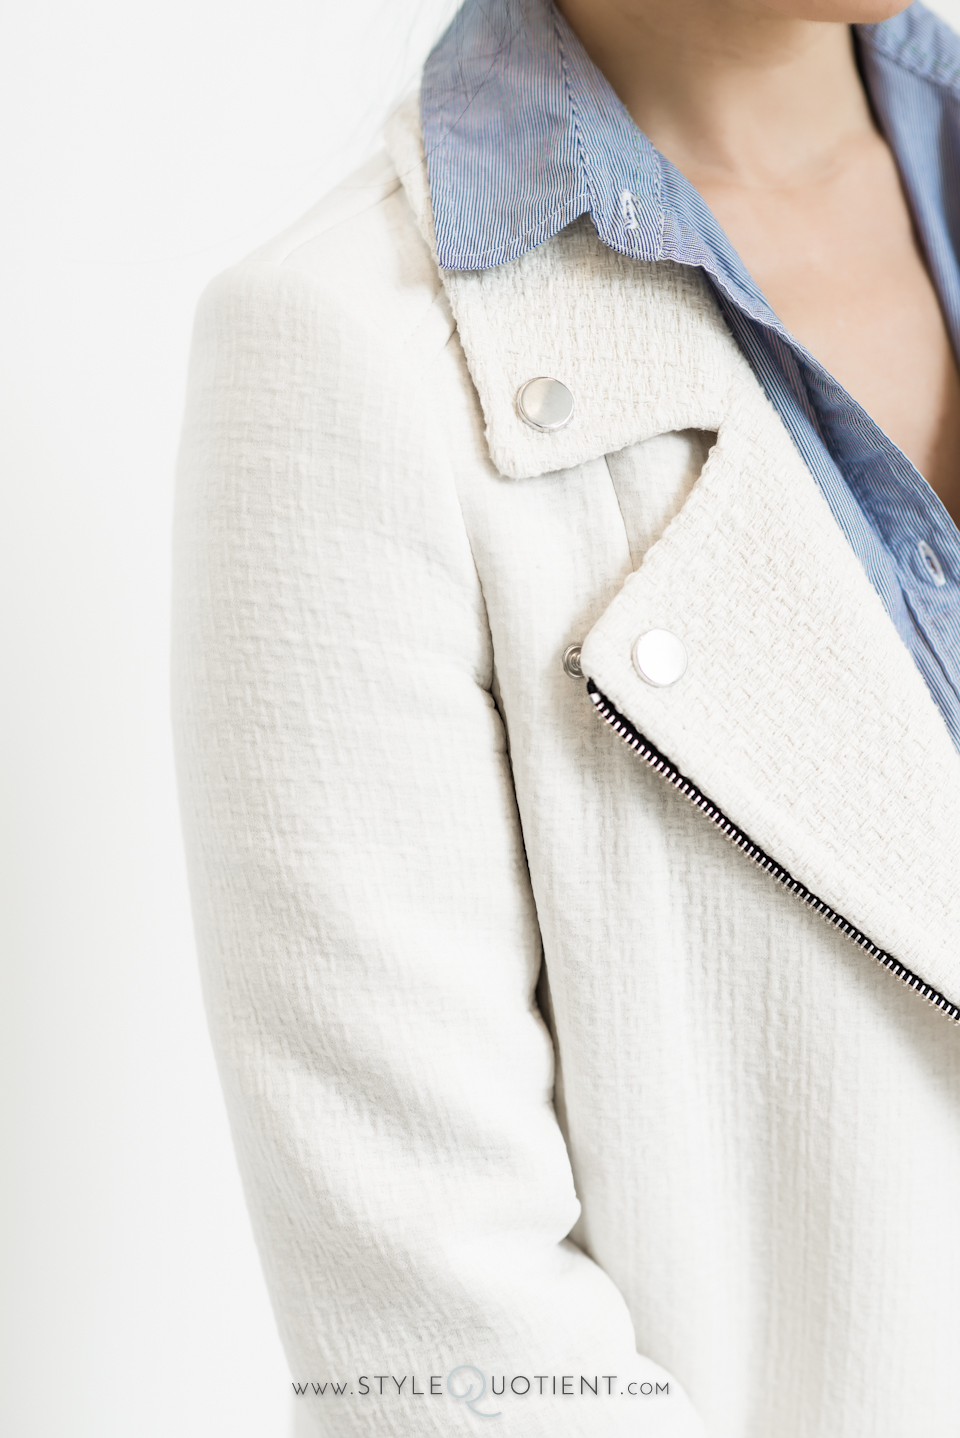 Partly Sunny Style Quotient Zara Motor Jacket